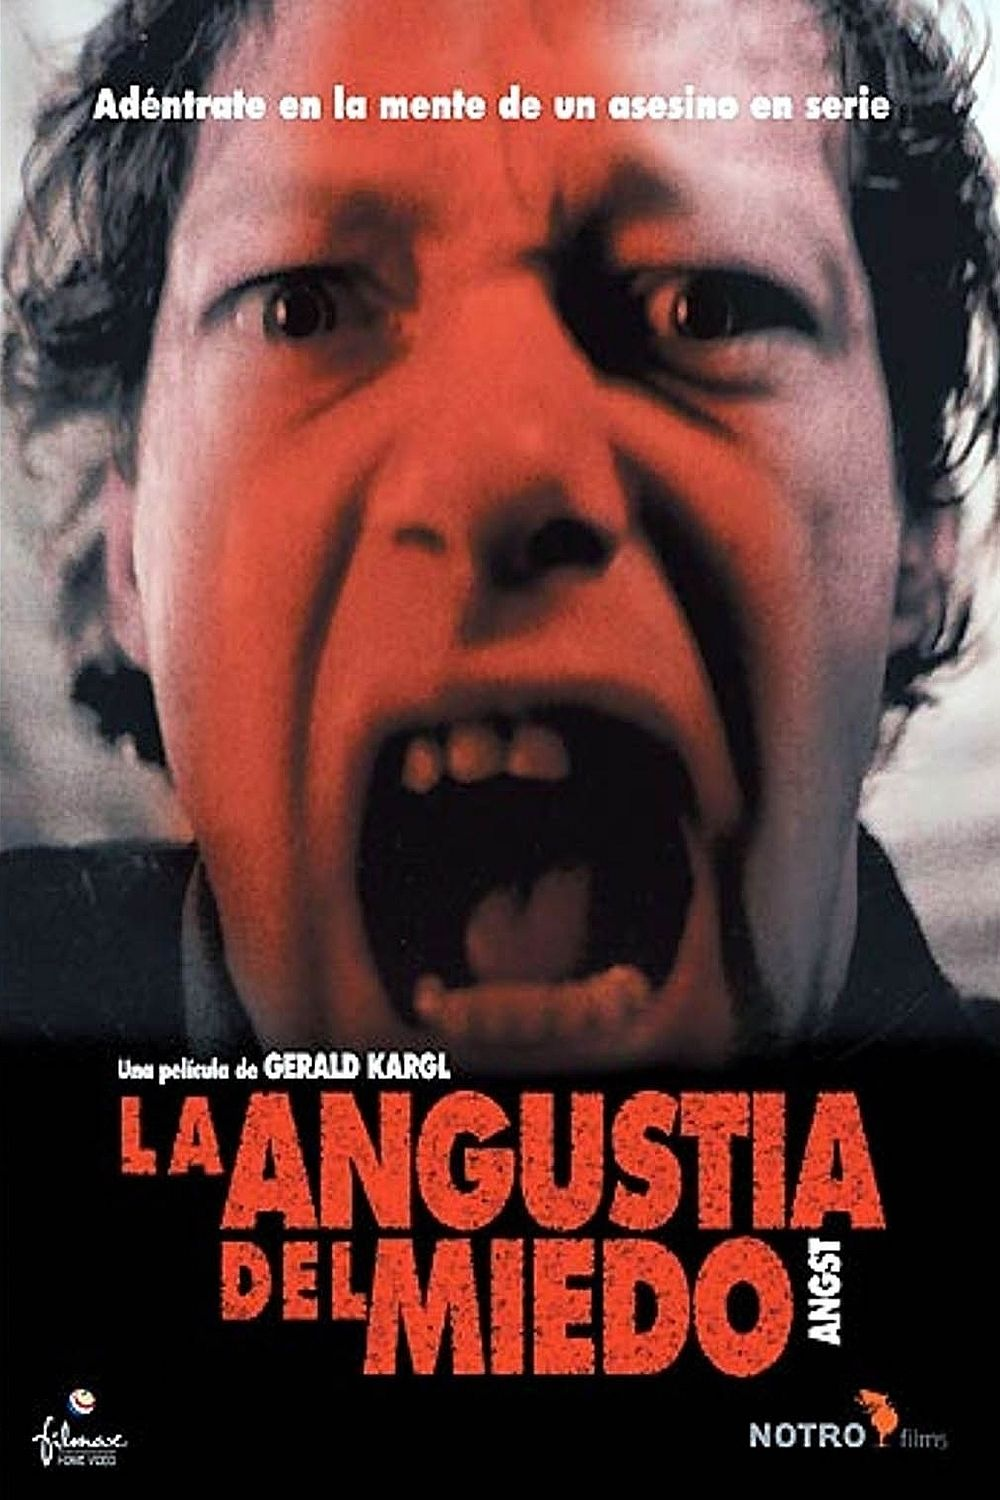 Angst Movie 2003 gerald kargl (1983) angst {fear} | m276 | film structure